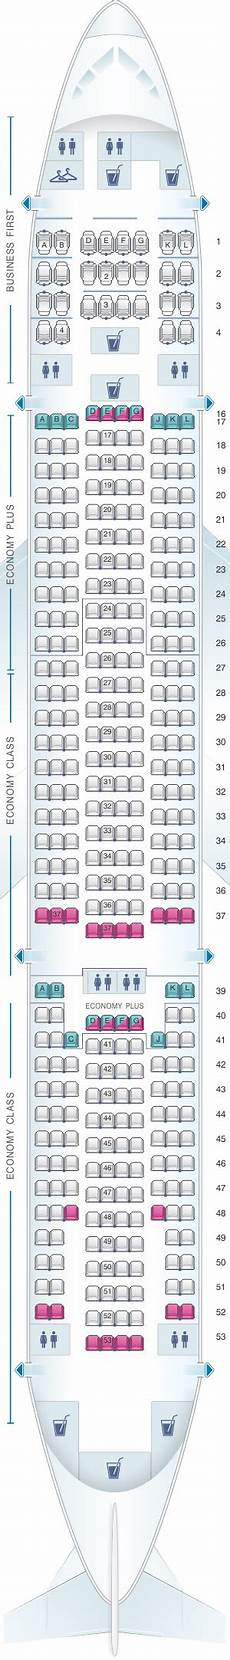 United Airlines Seating Chart 777 International Seat Map United Airlines Boeing B777 200 777 Version 5